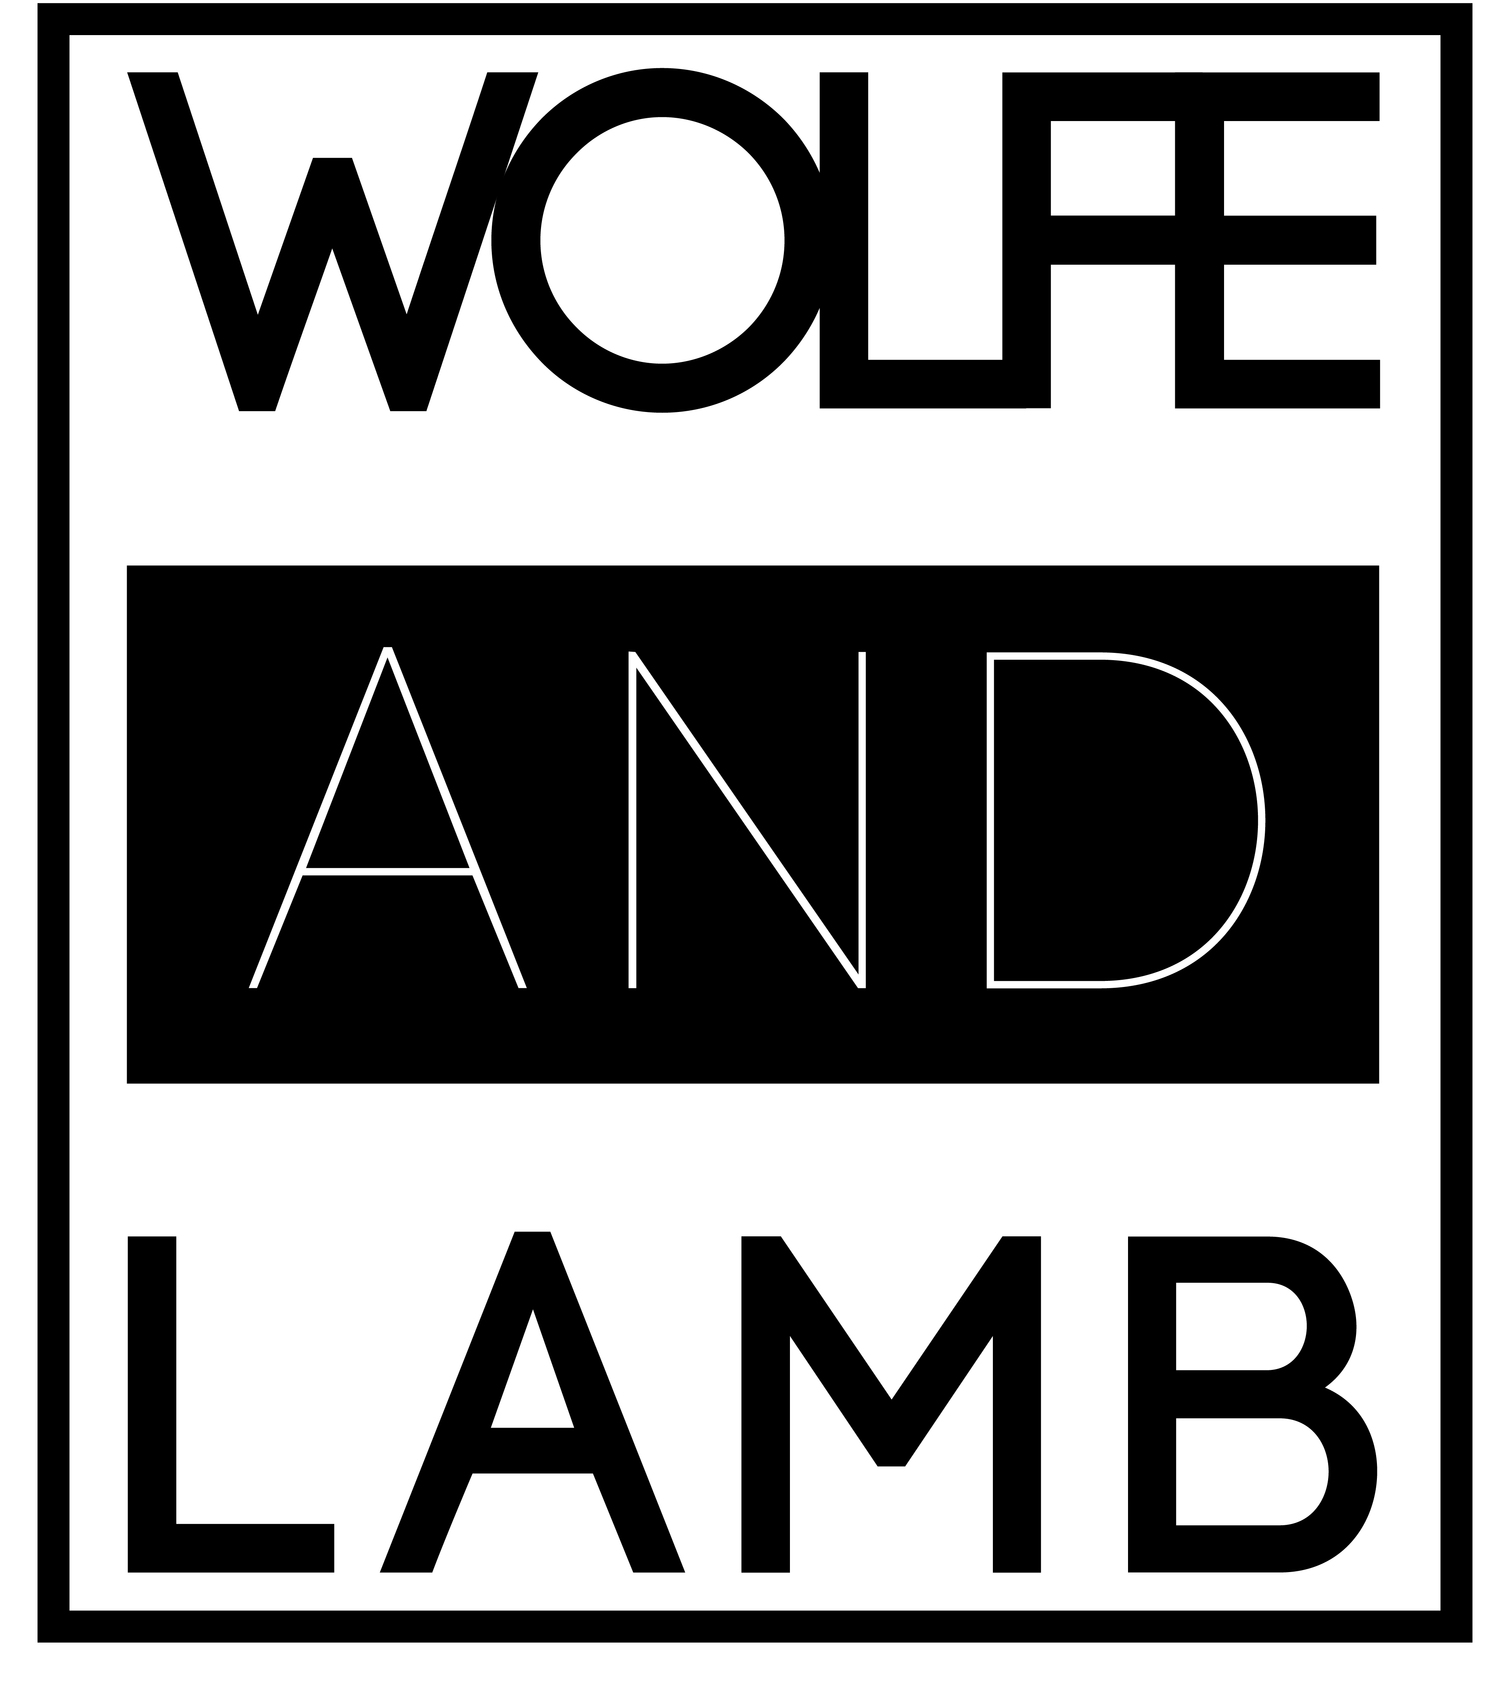 Wolfe and Lamb